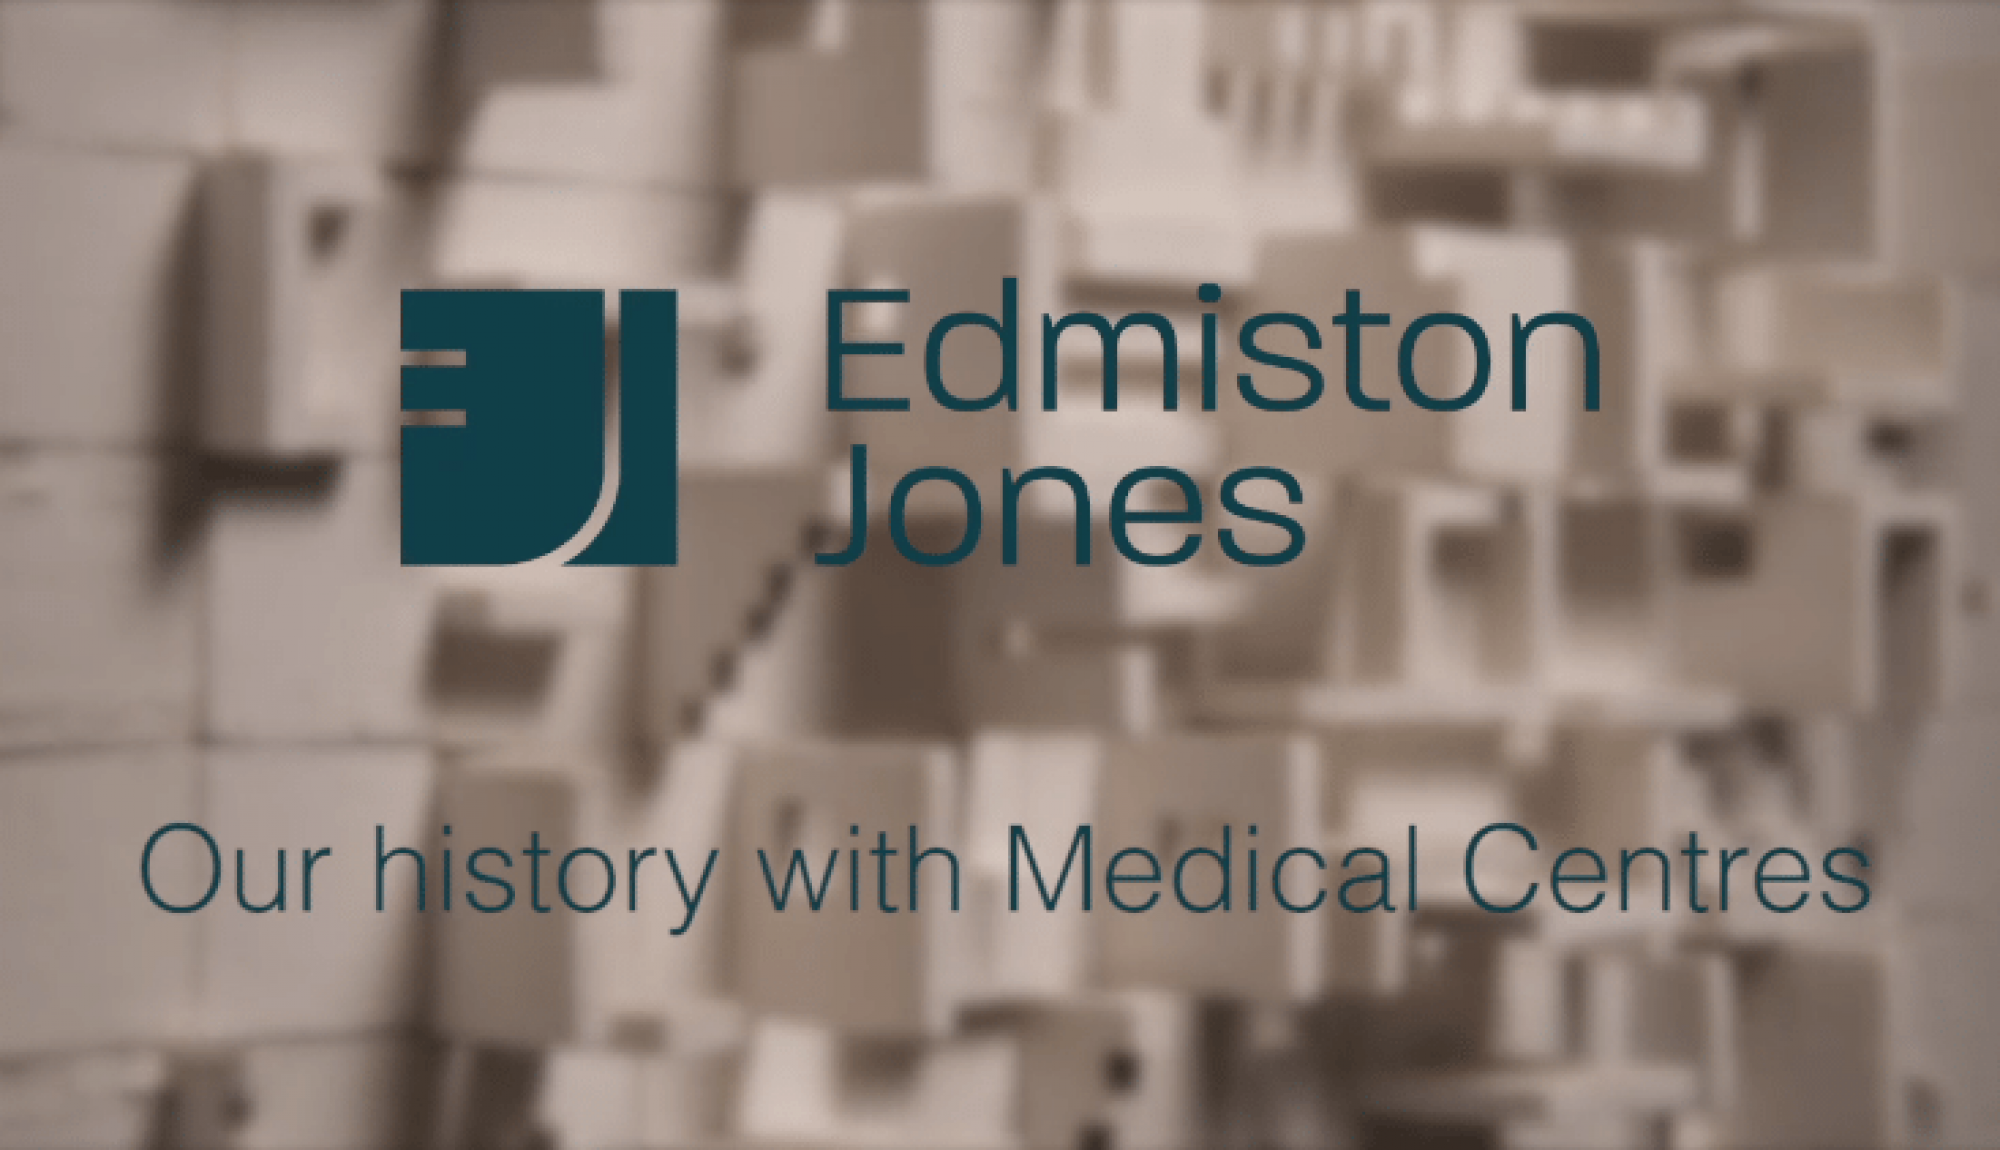 Our History with Medical Centres